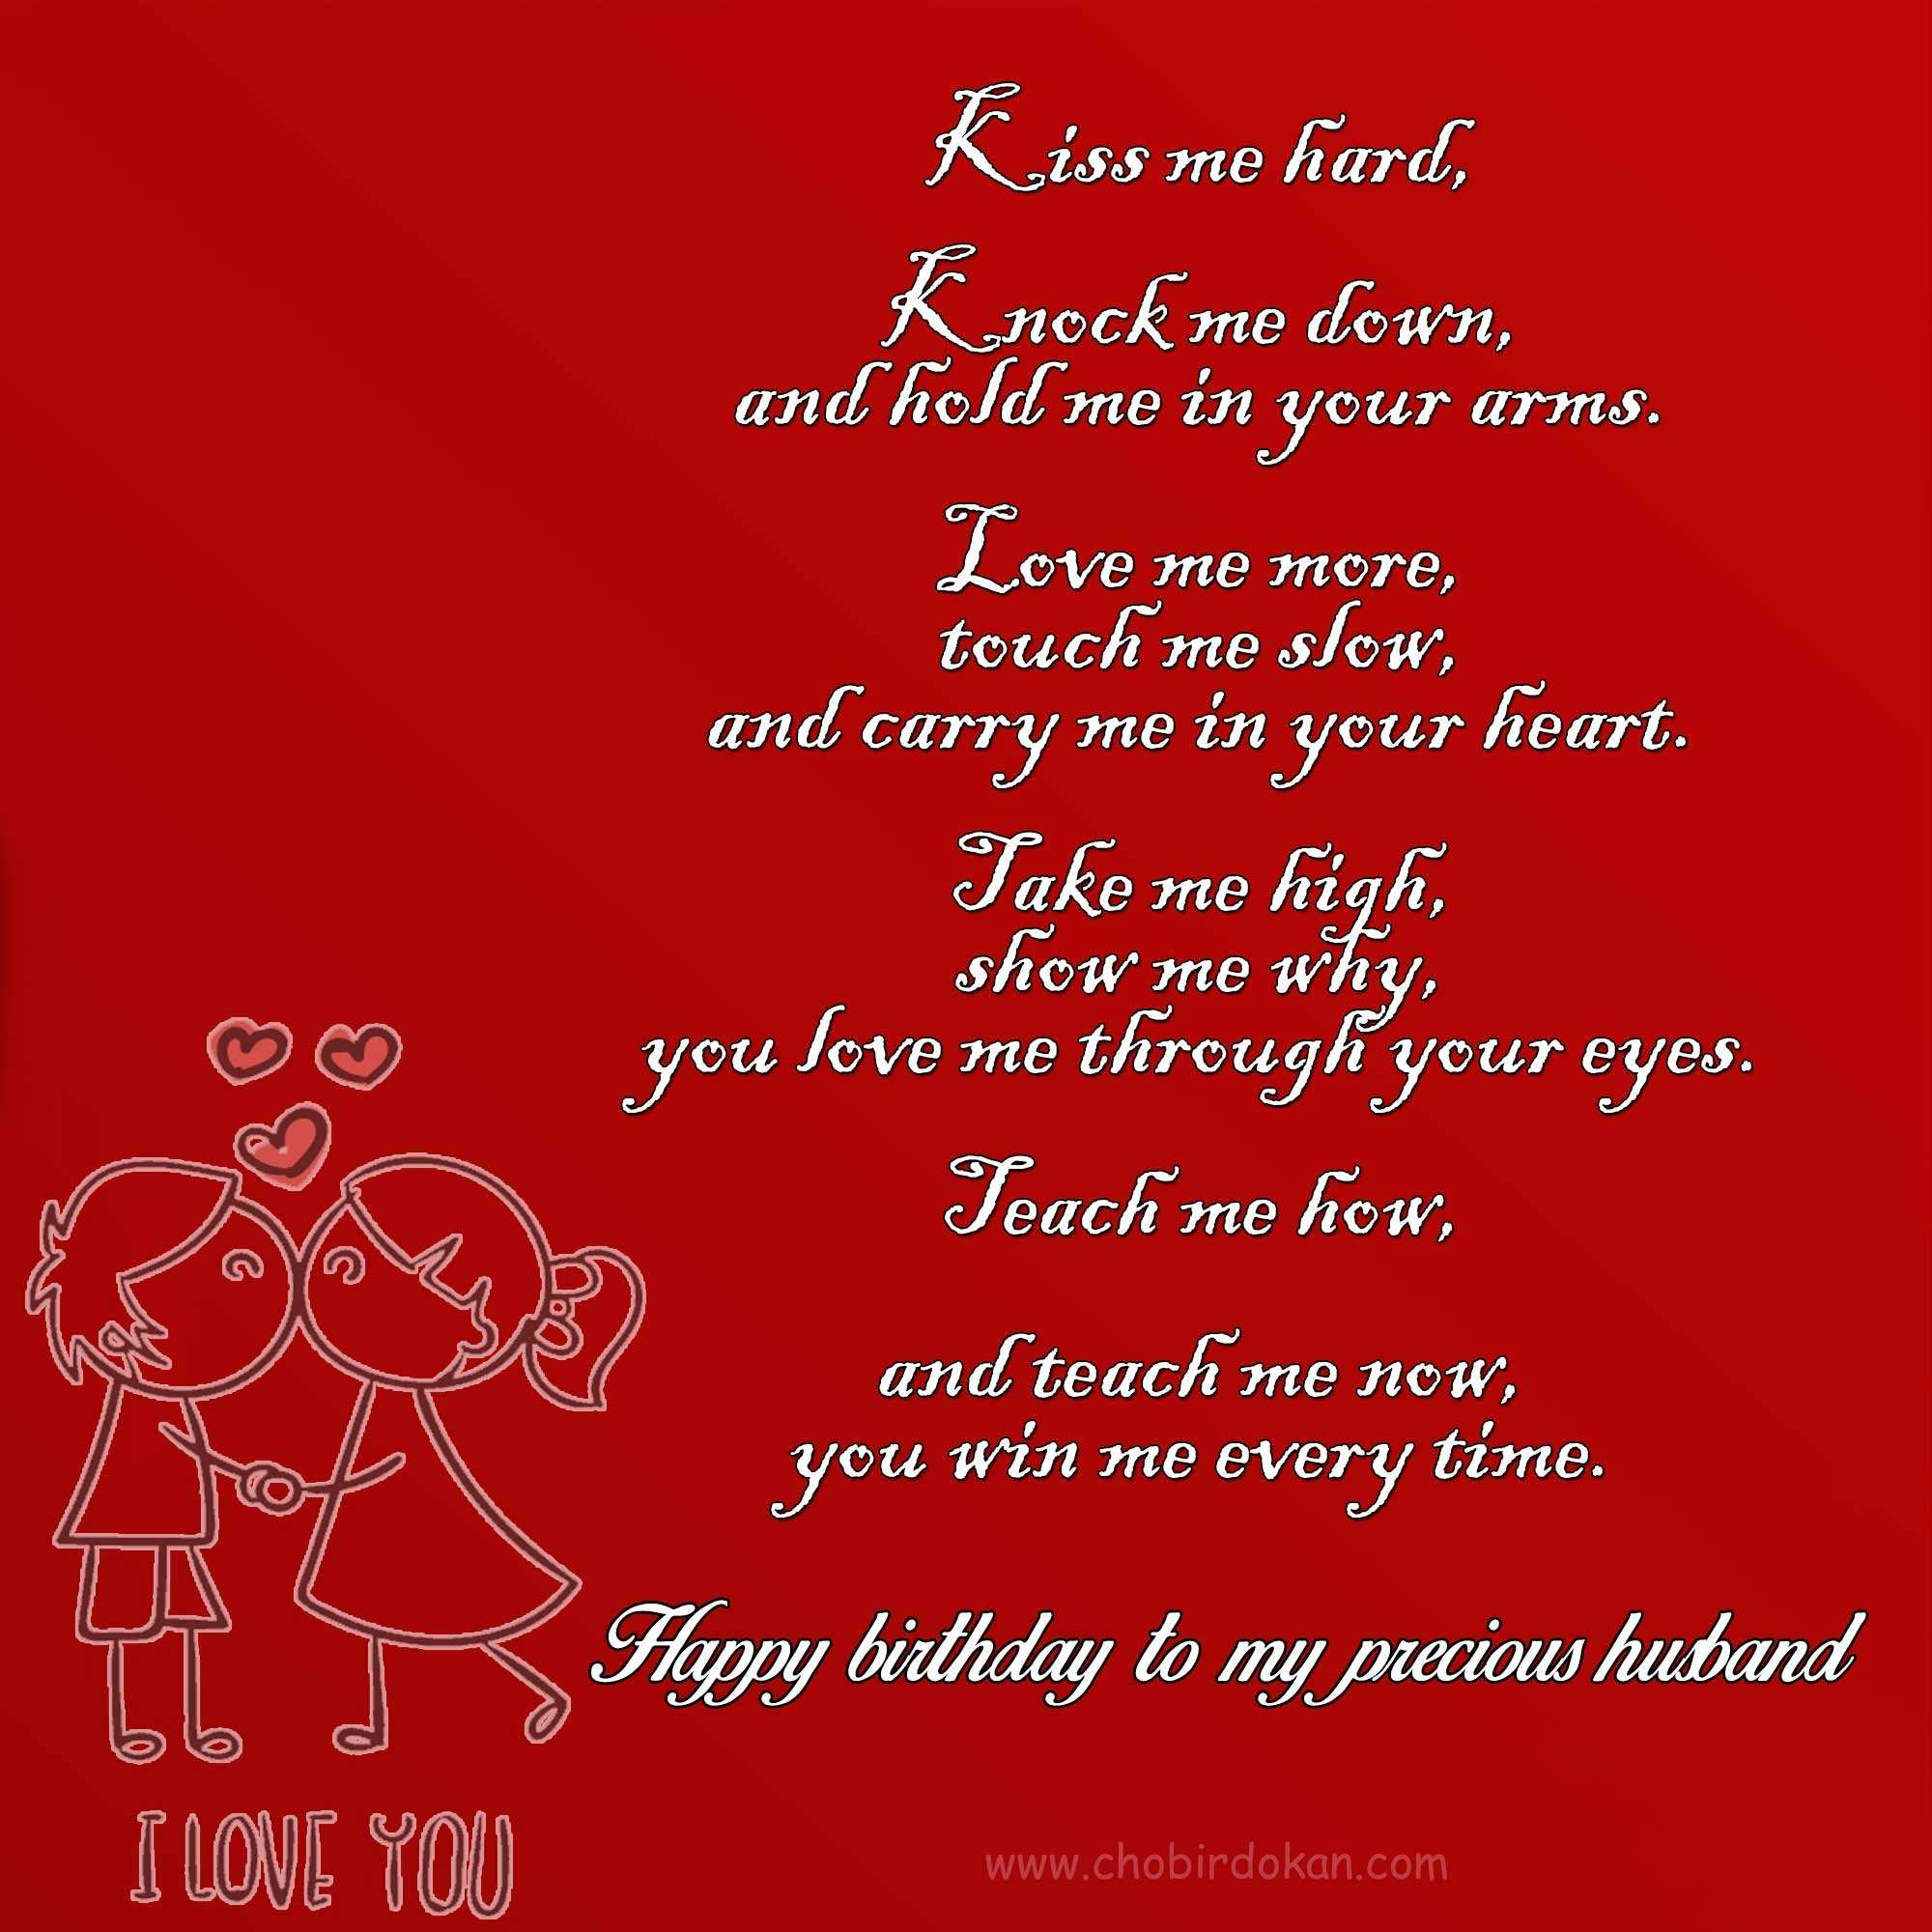 birthday poem for wife funny ; funny-happy-birthday-wishes-for-husband-unique-happy-birthday-poems-for-him-of-funny-happy-birthday-wishes-for-husband